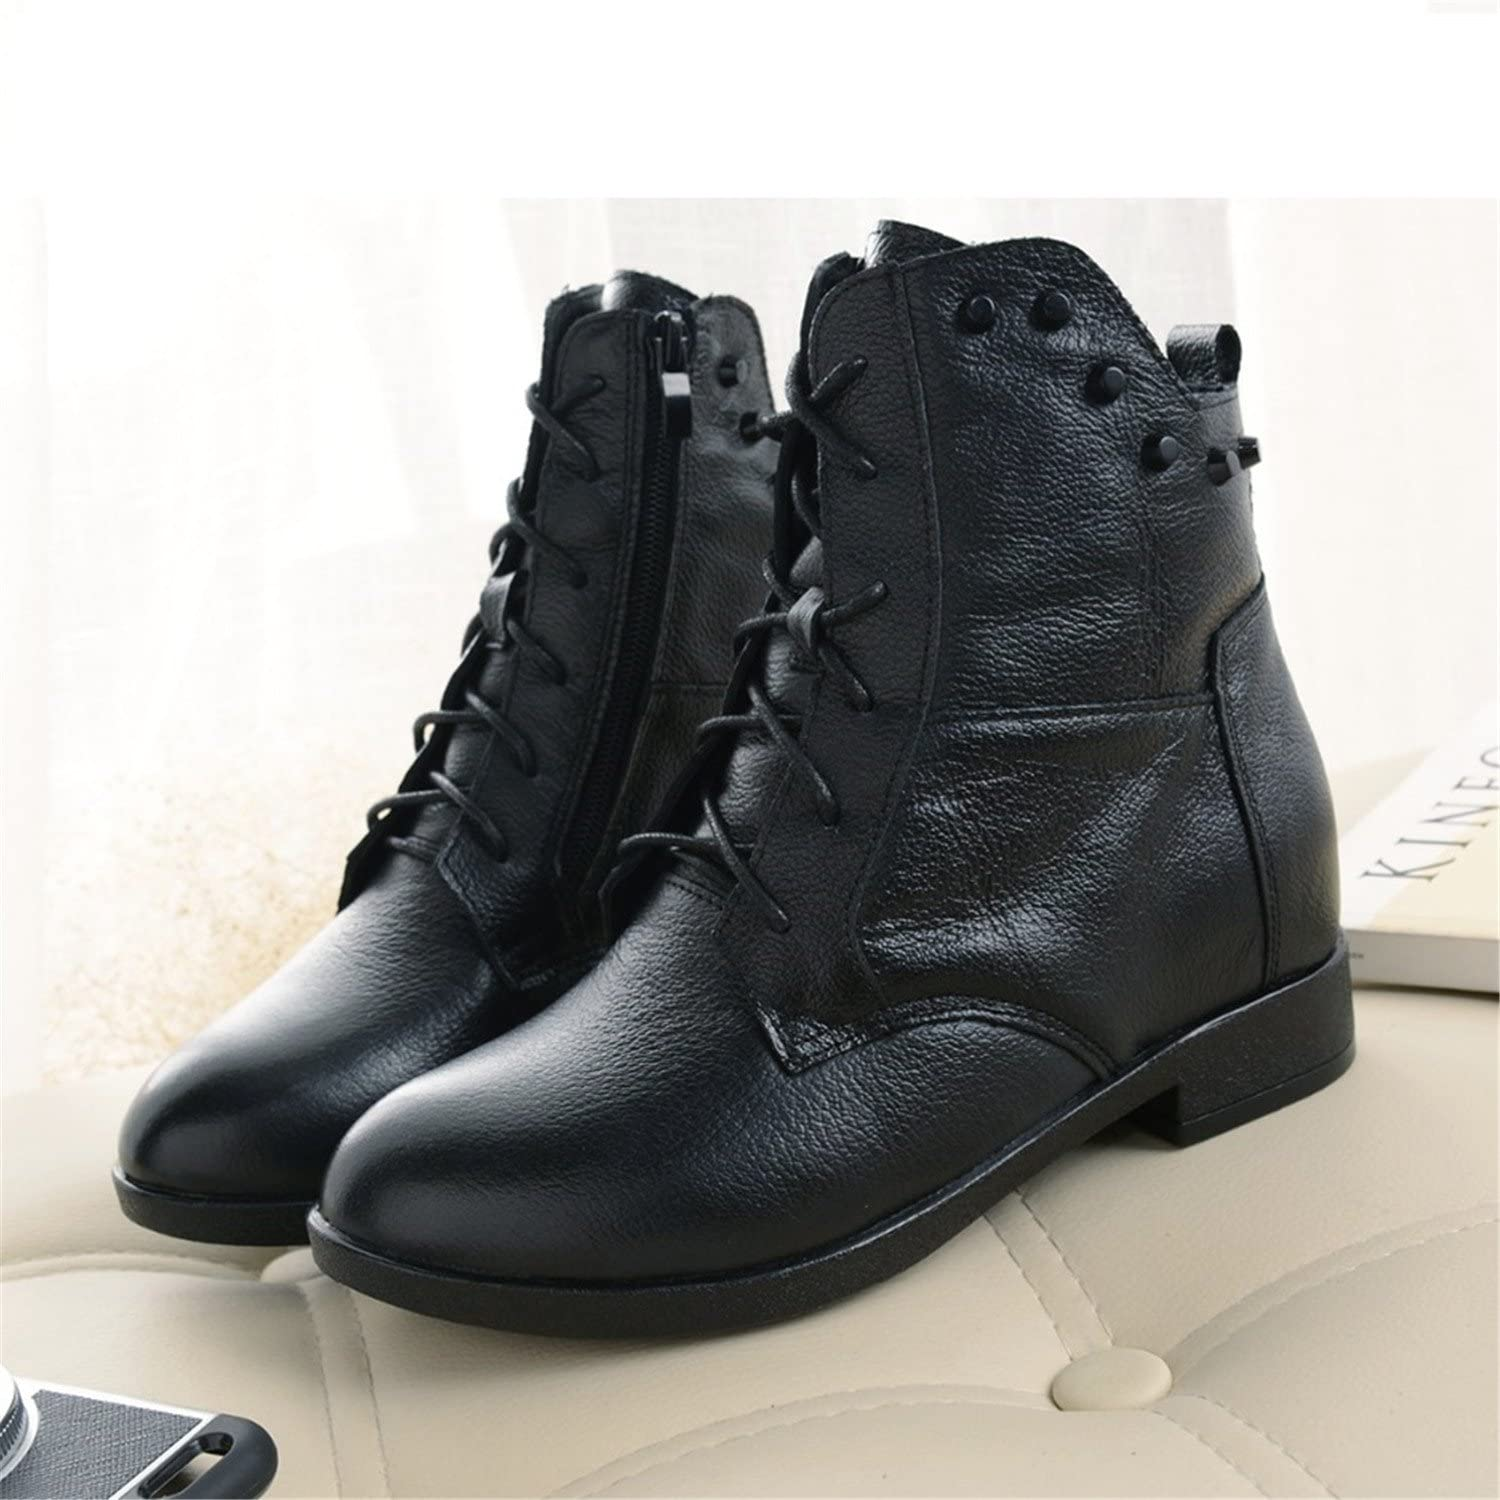 Taylor Heart Nice;Fashion Fashions Snow Boots Women's shoes Mother Ladies Female Plush Winter Fur Rubber Genuine Leather Lace Up Flats Round Toe GZXM8812